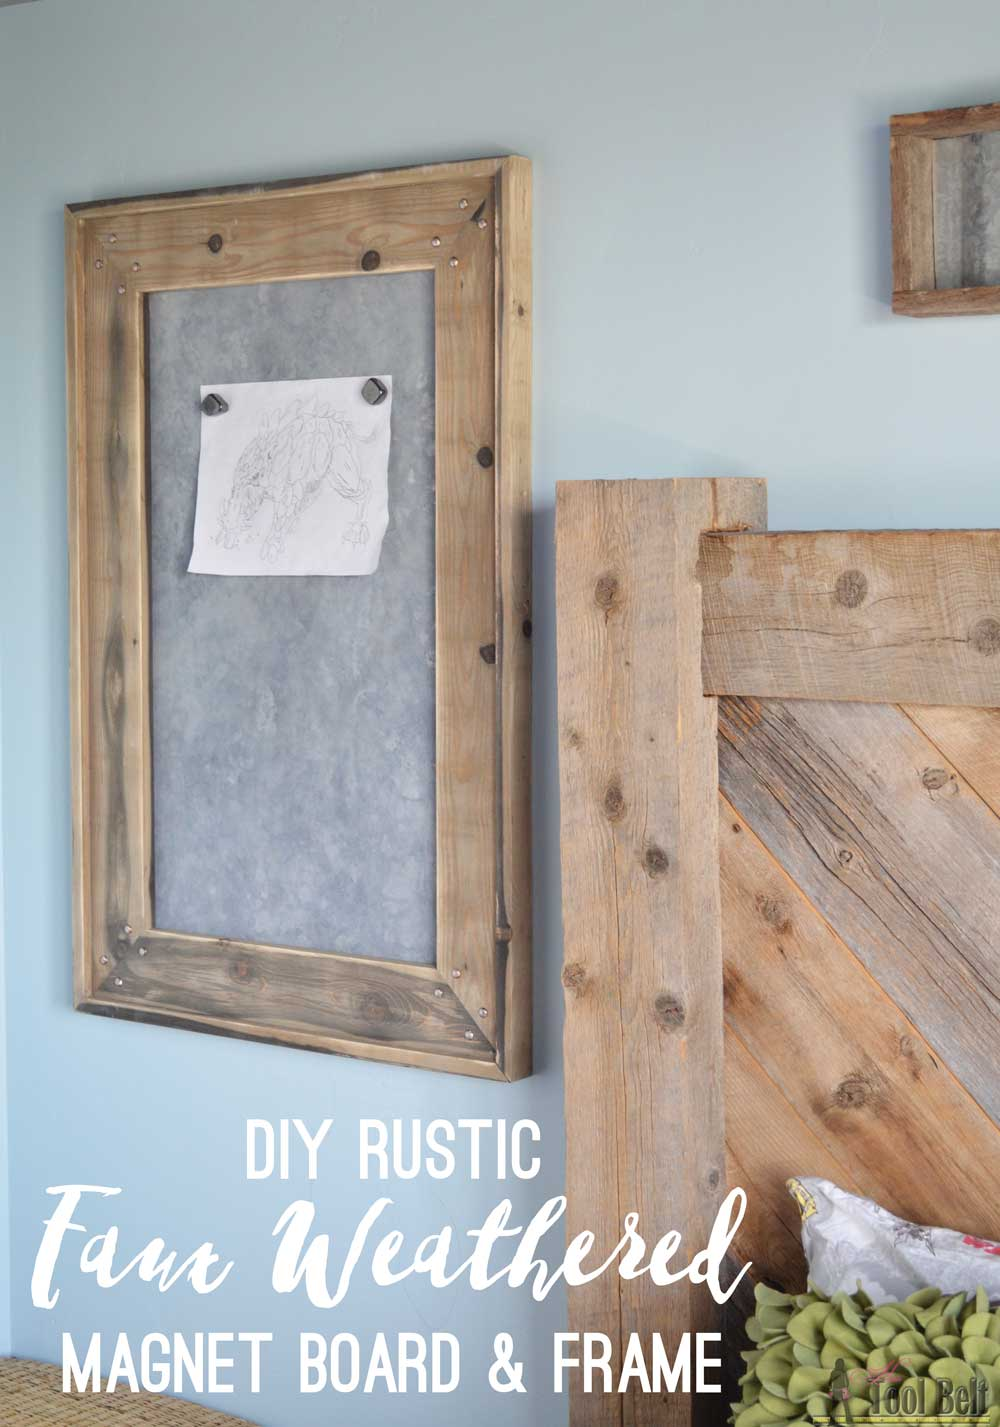 Diy Rustic Frame Rustic Farmhouse Magnet Board And Frame Her Tool Belt